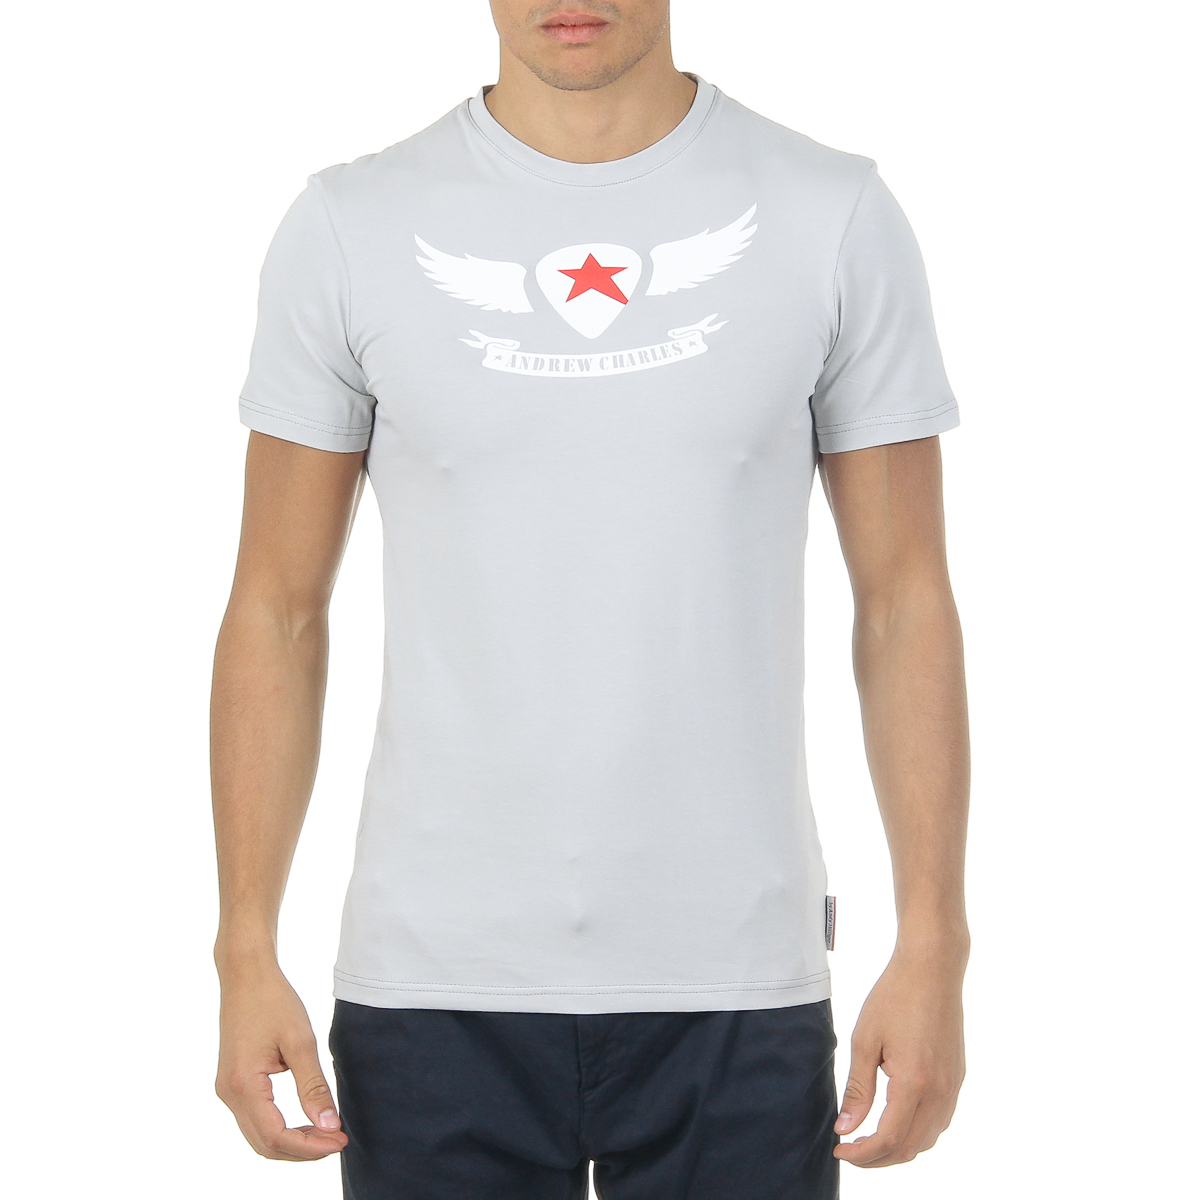 Primary image for Andrew Charles Mens T-Shirt Short Sleeves Round Neck Light Grey KEITA